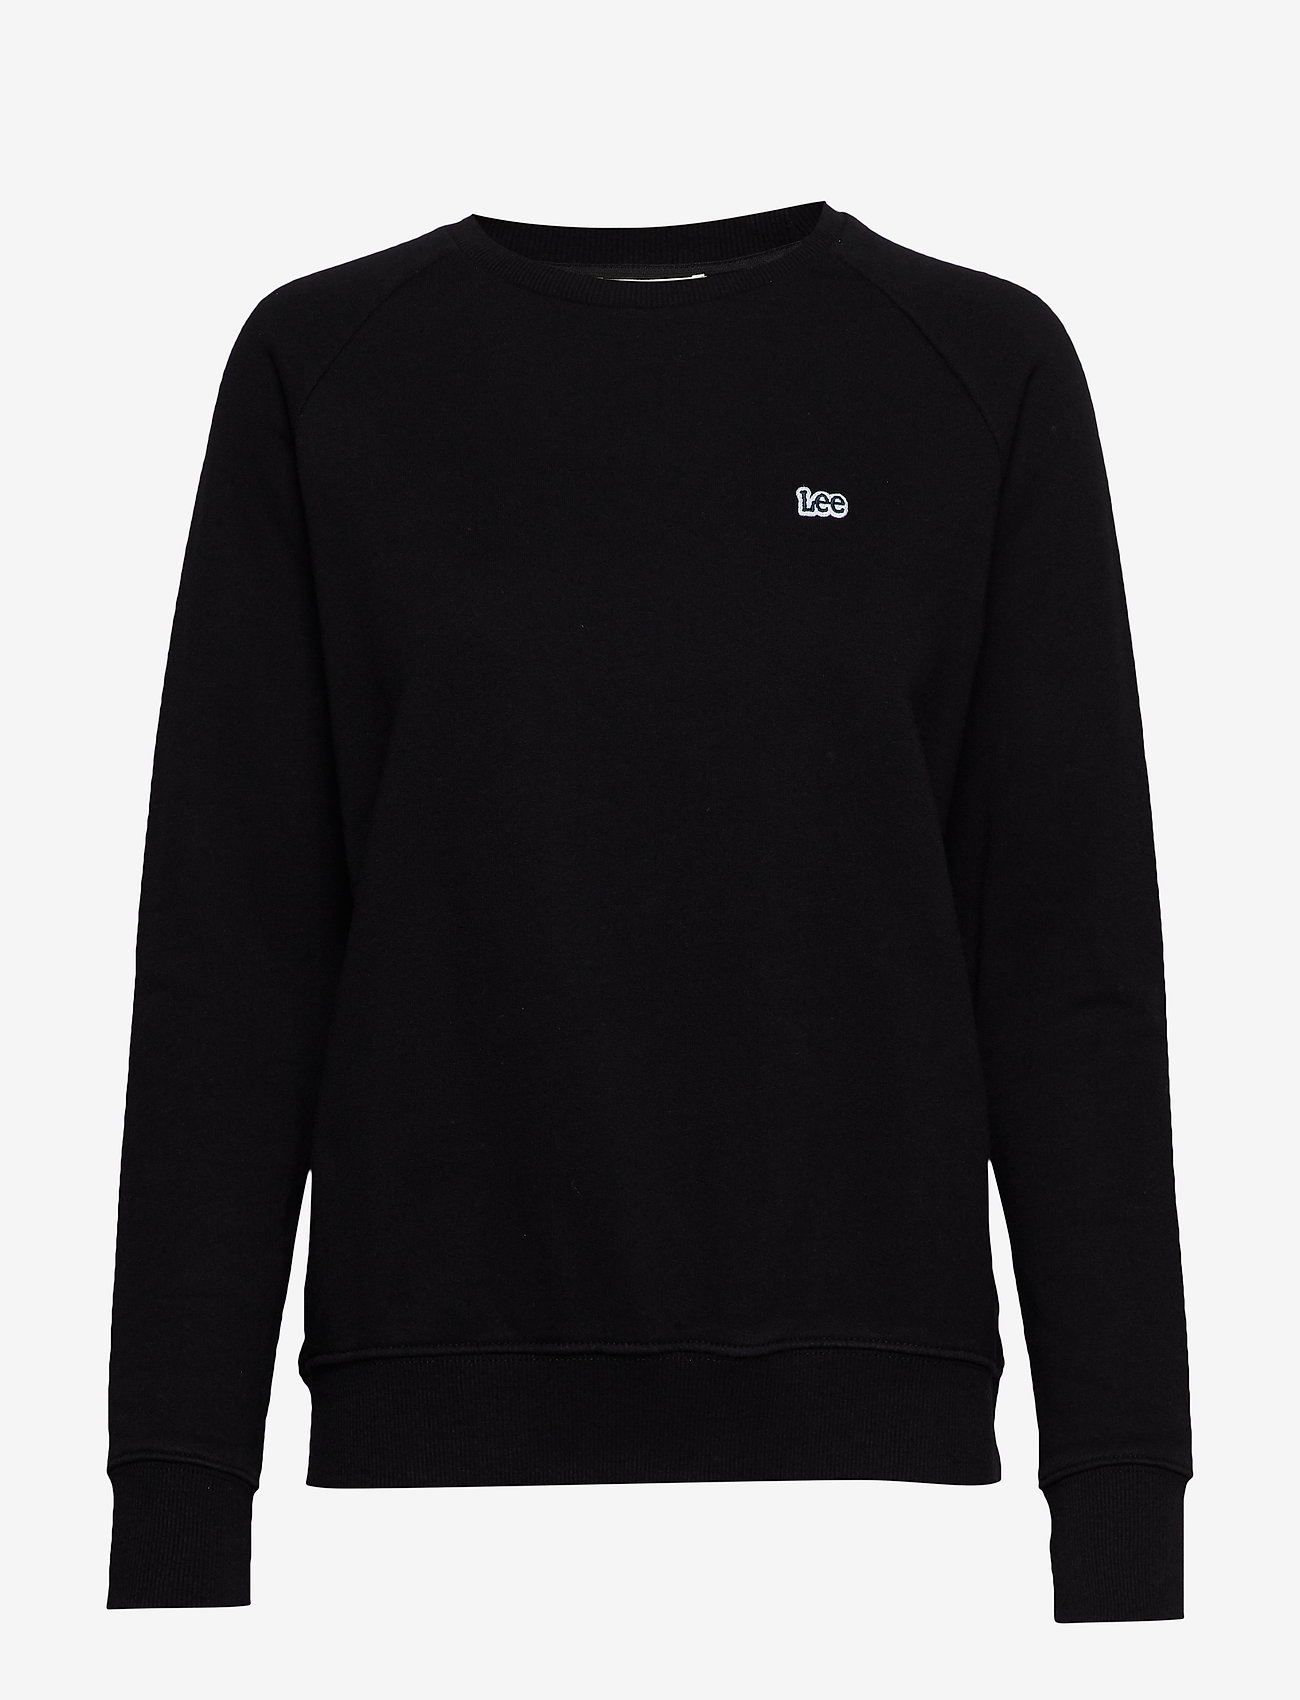 Lee Jeans - PLAIN CREW NECK SWS - sweatshirts - black - 0